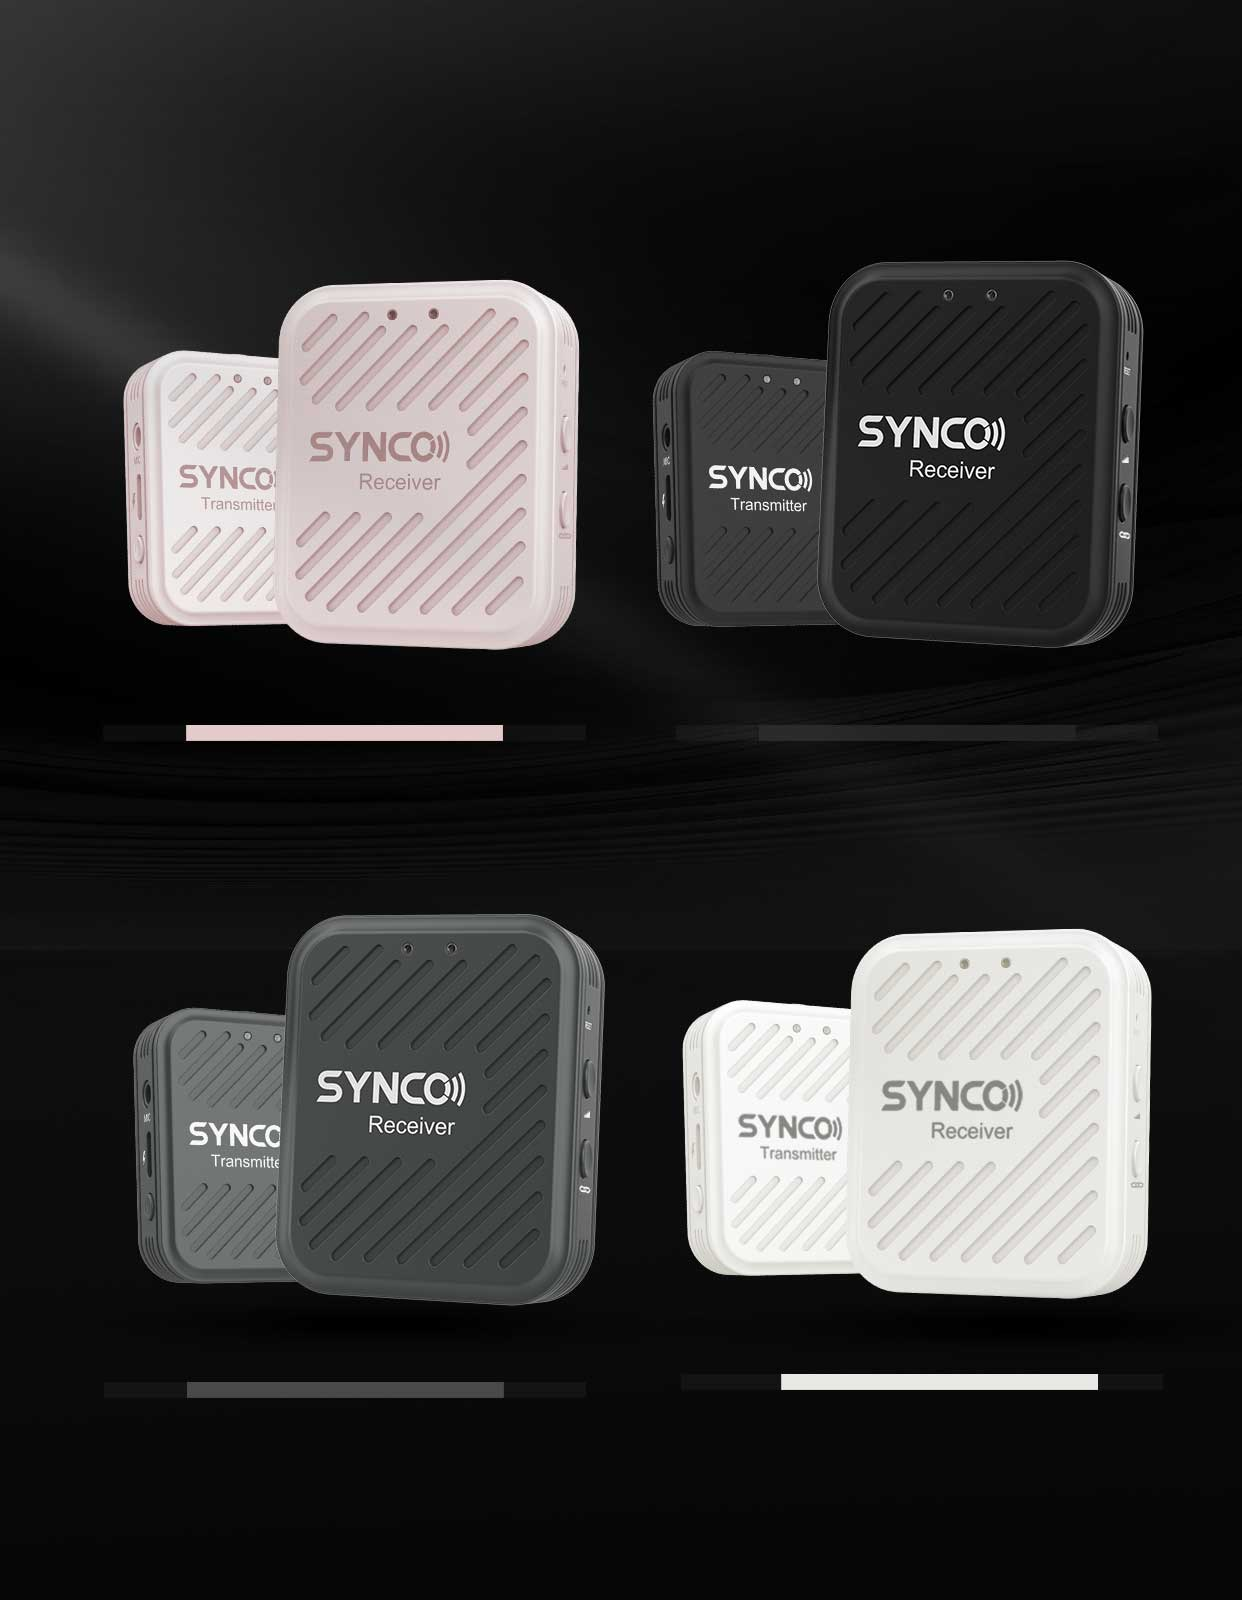 SYNCO G1(A1) More Colors to Experience More